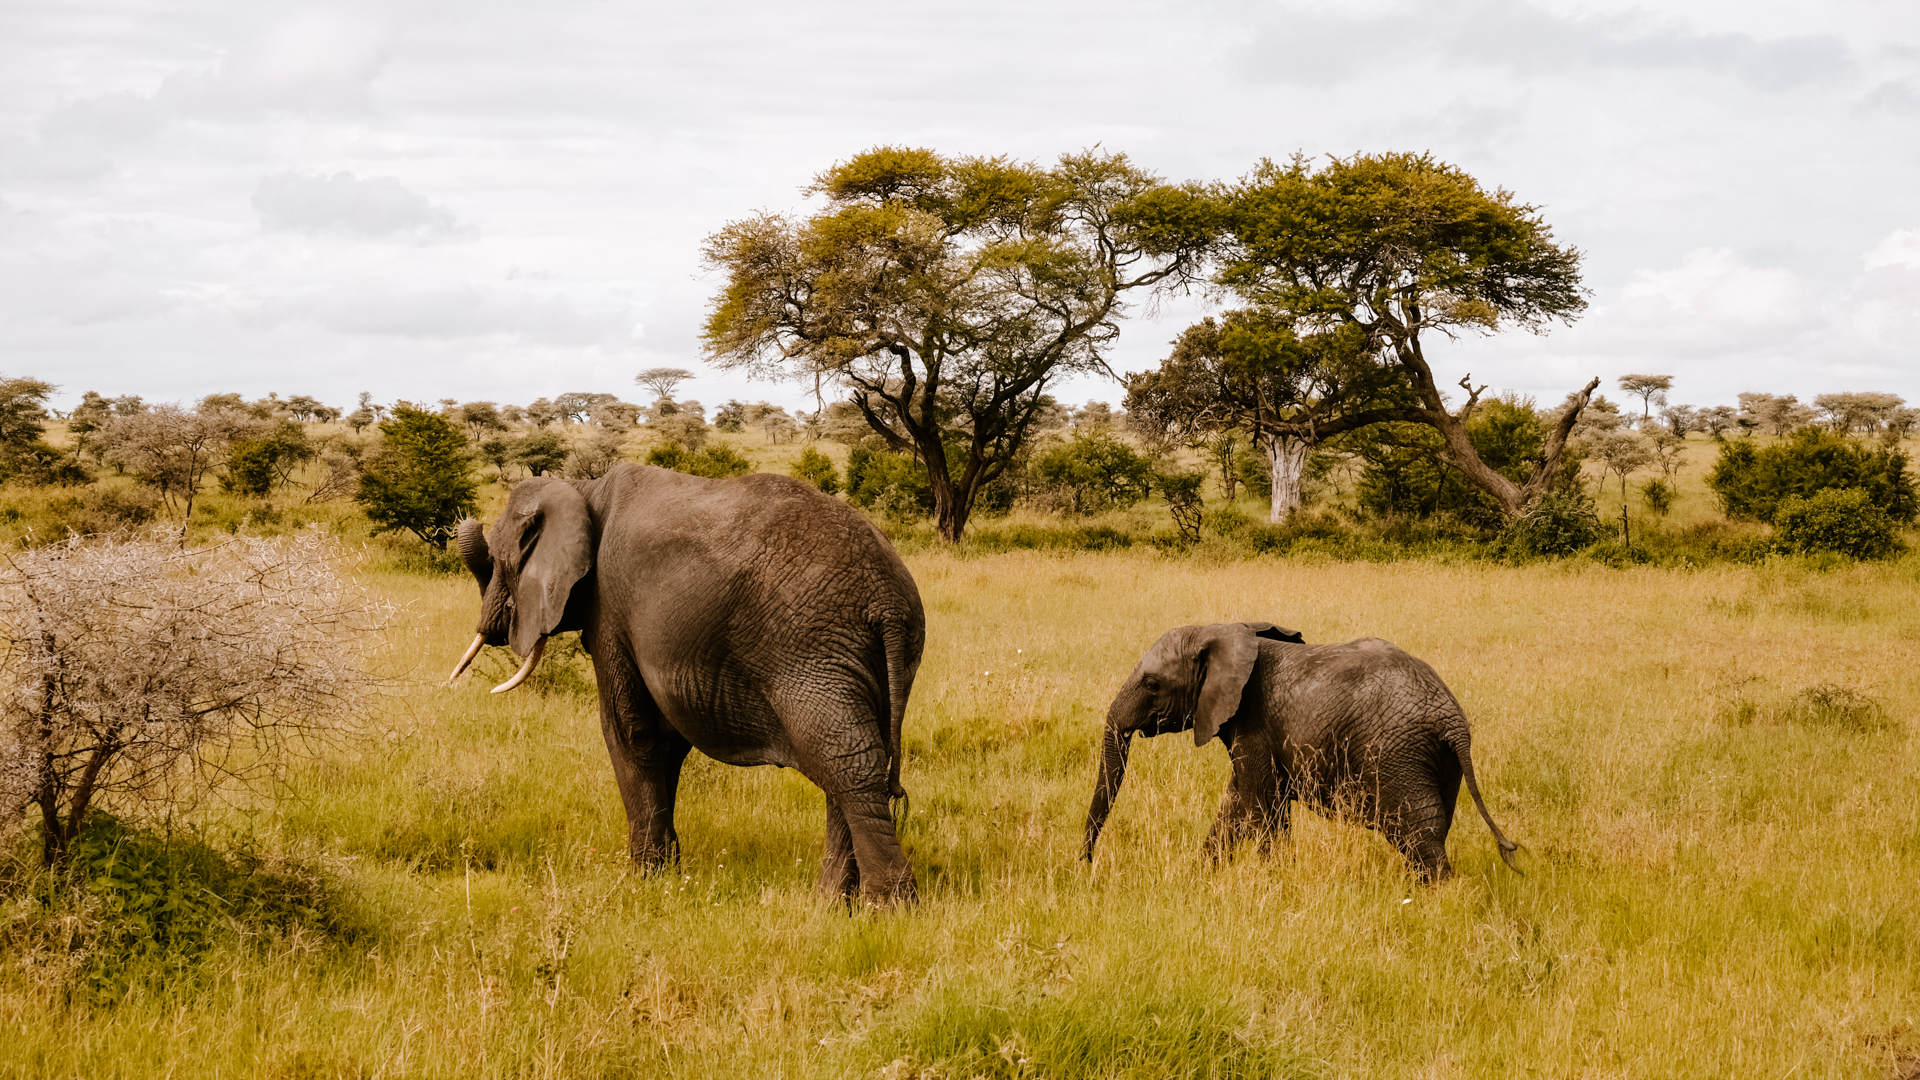 Mother with baby elephant in the Serengeti National Park, Tanzania